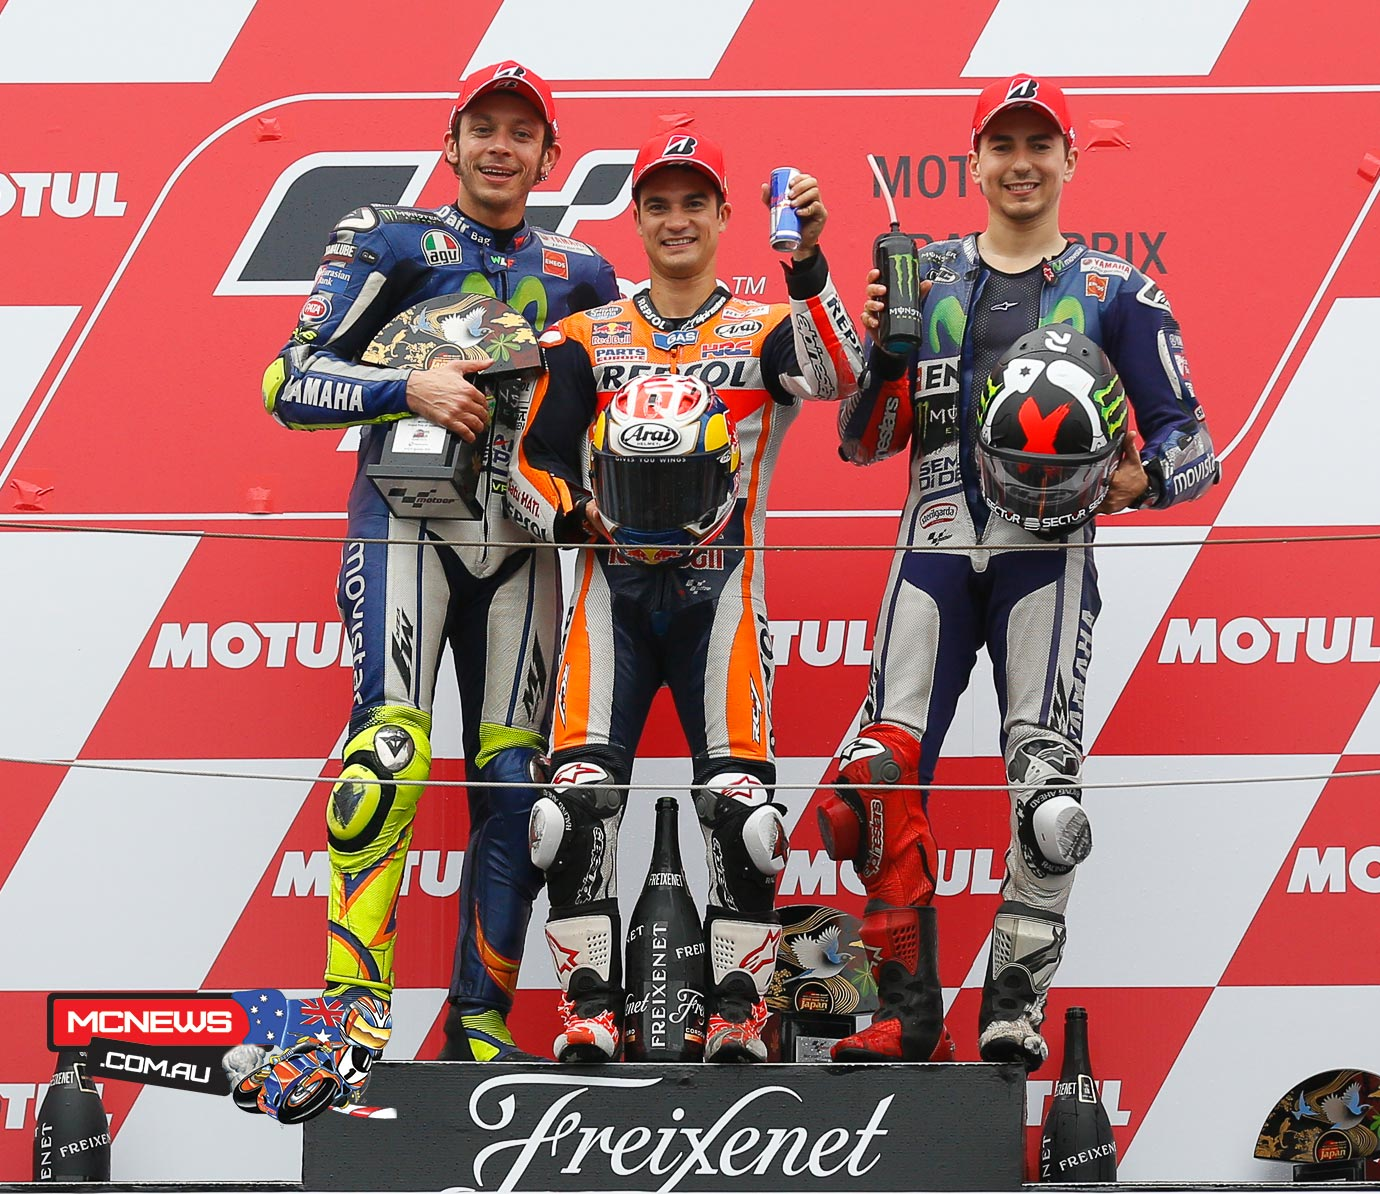 Dani Pedrosa rides a superb race to take victory at the Motul Grand Prix of Japan while Rossi extends lead over Lorenzo to 18 points.